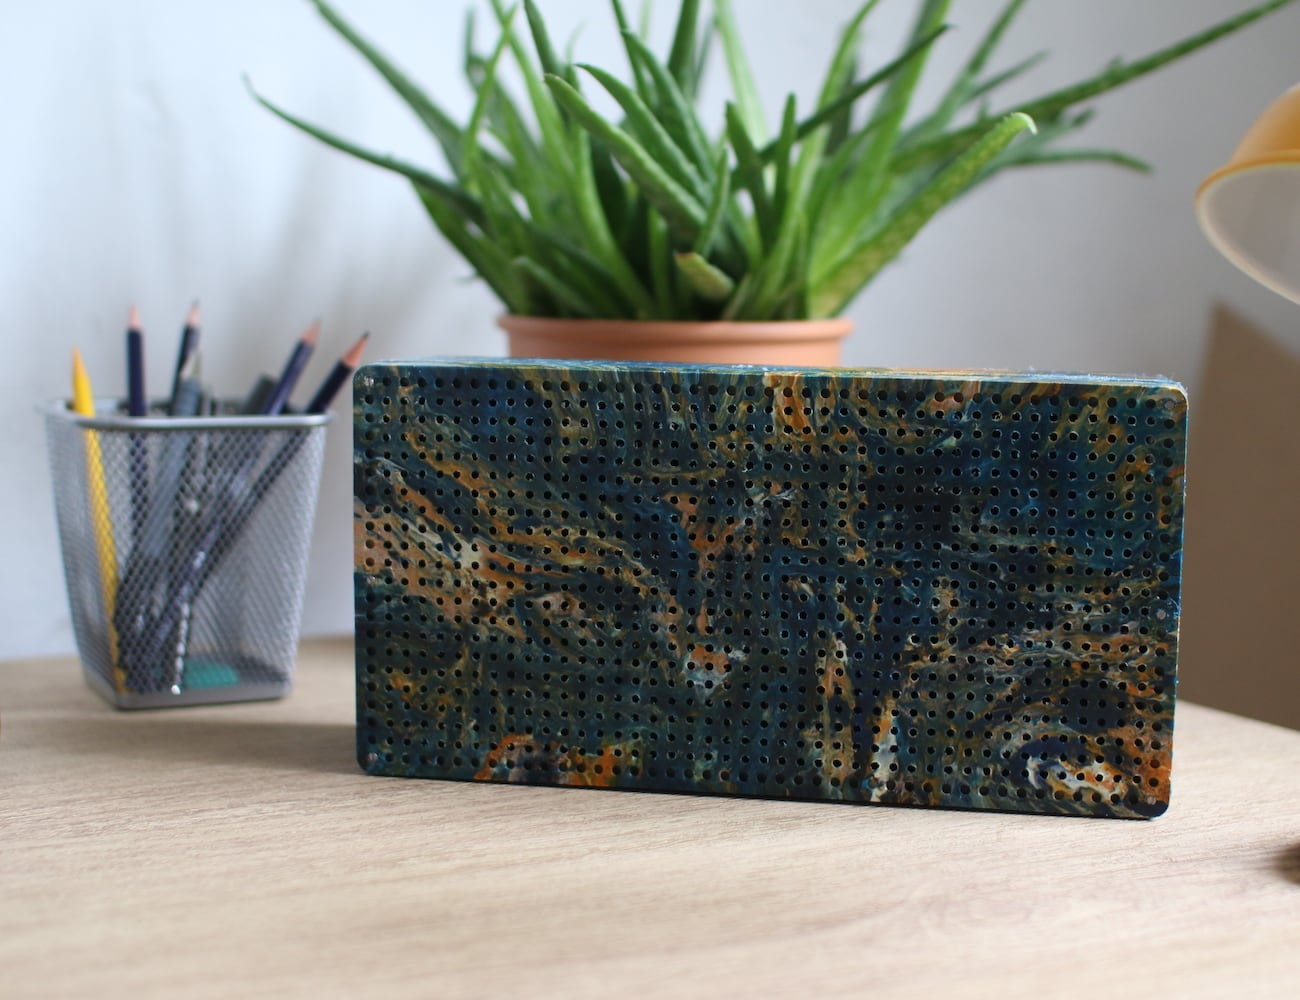 Gomi Hand-Marbled Recycled Plastic Speakers is made from plastic waste